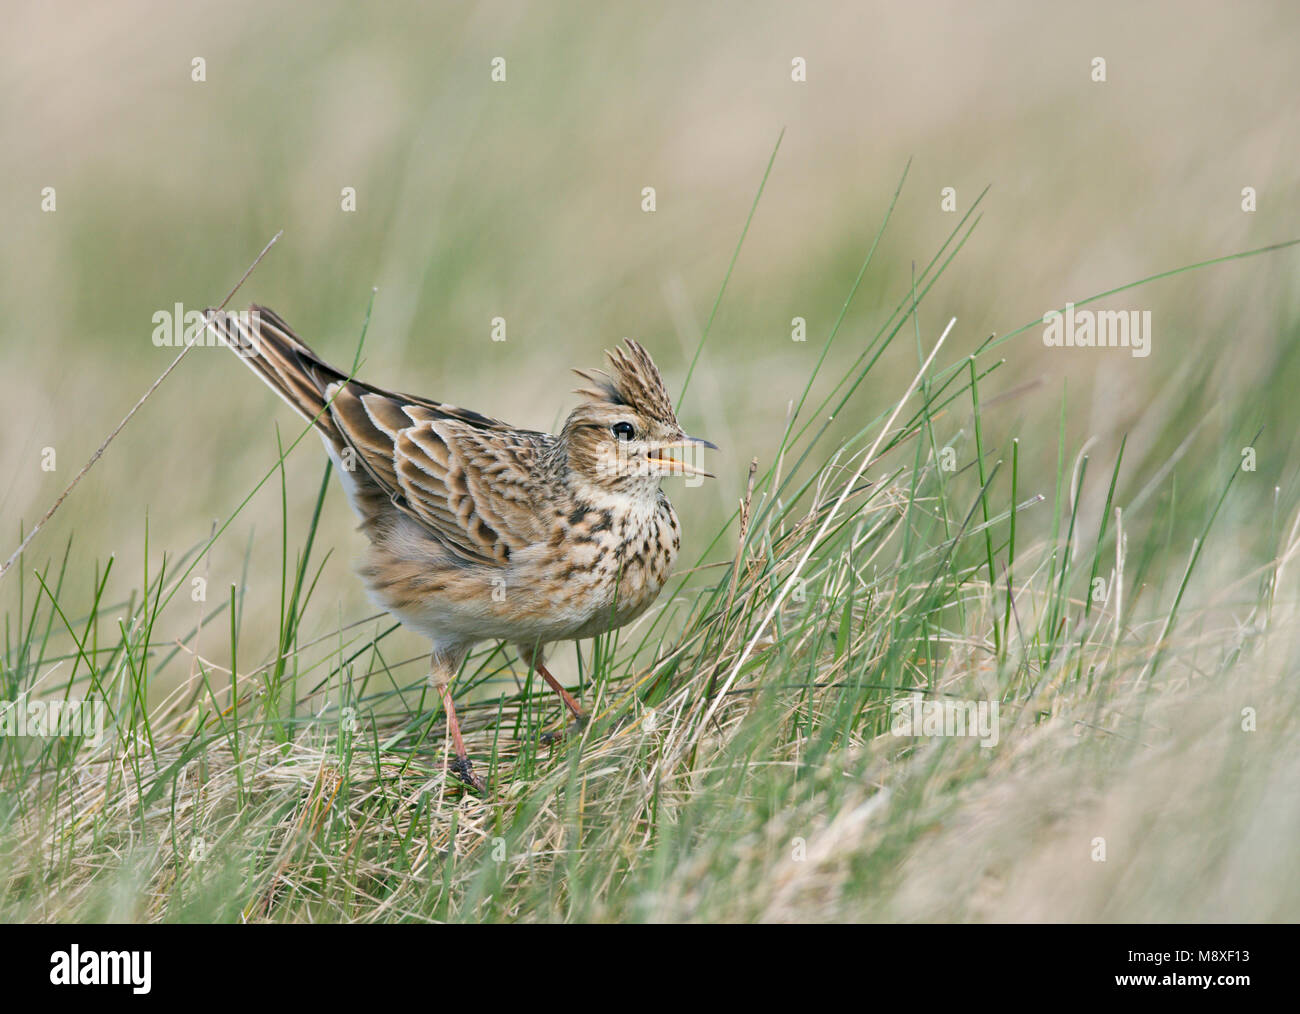 Veldleeuwerik op de grond; Eurasian Skylark on the ground - Stock Image